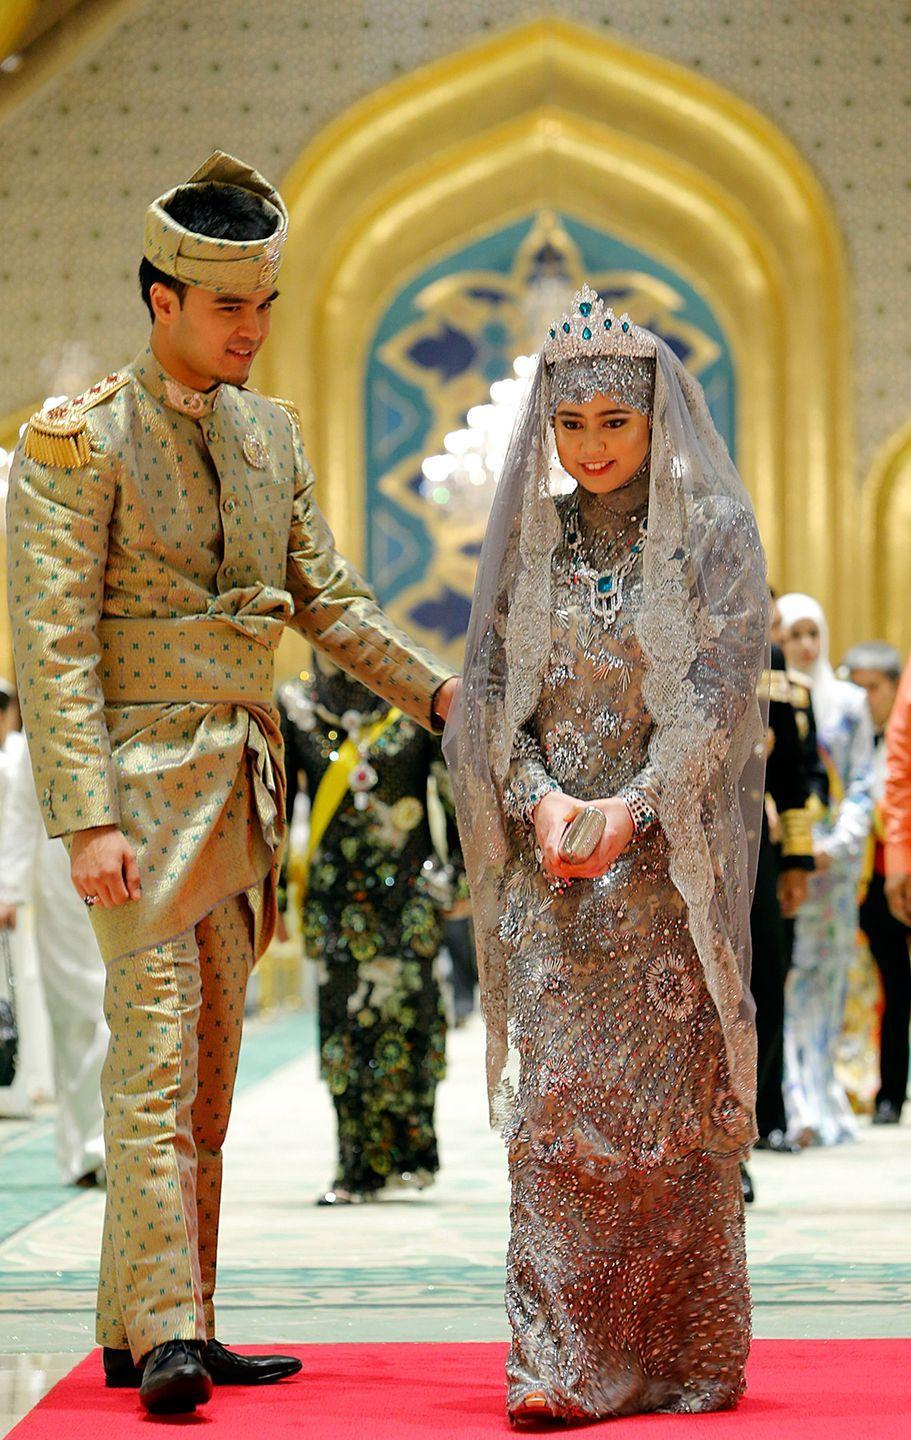 <p>The fifth child of the Sultan of Brunei (one of the wealthiest men in the world), Princess Hajah Hafizah Surural Bolkiah dazzled in a wedding dress that was practically dripping in crystals. </p>